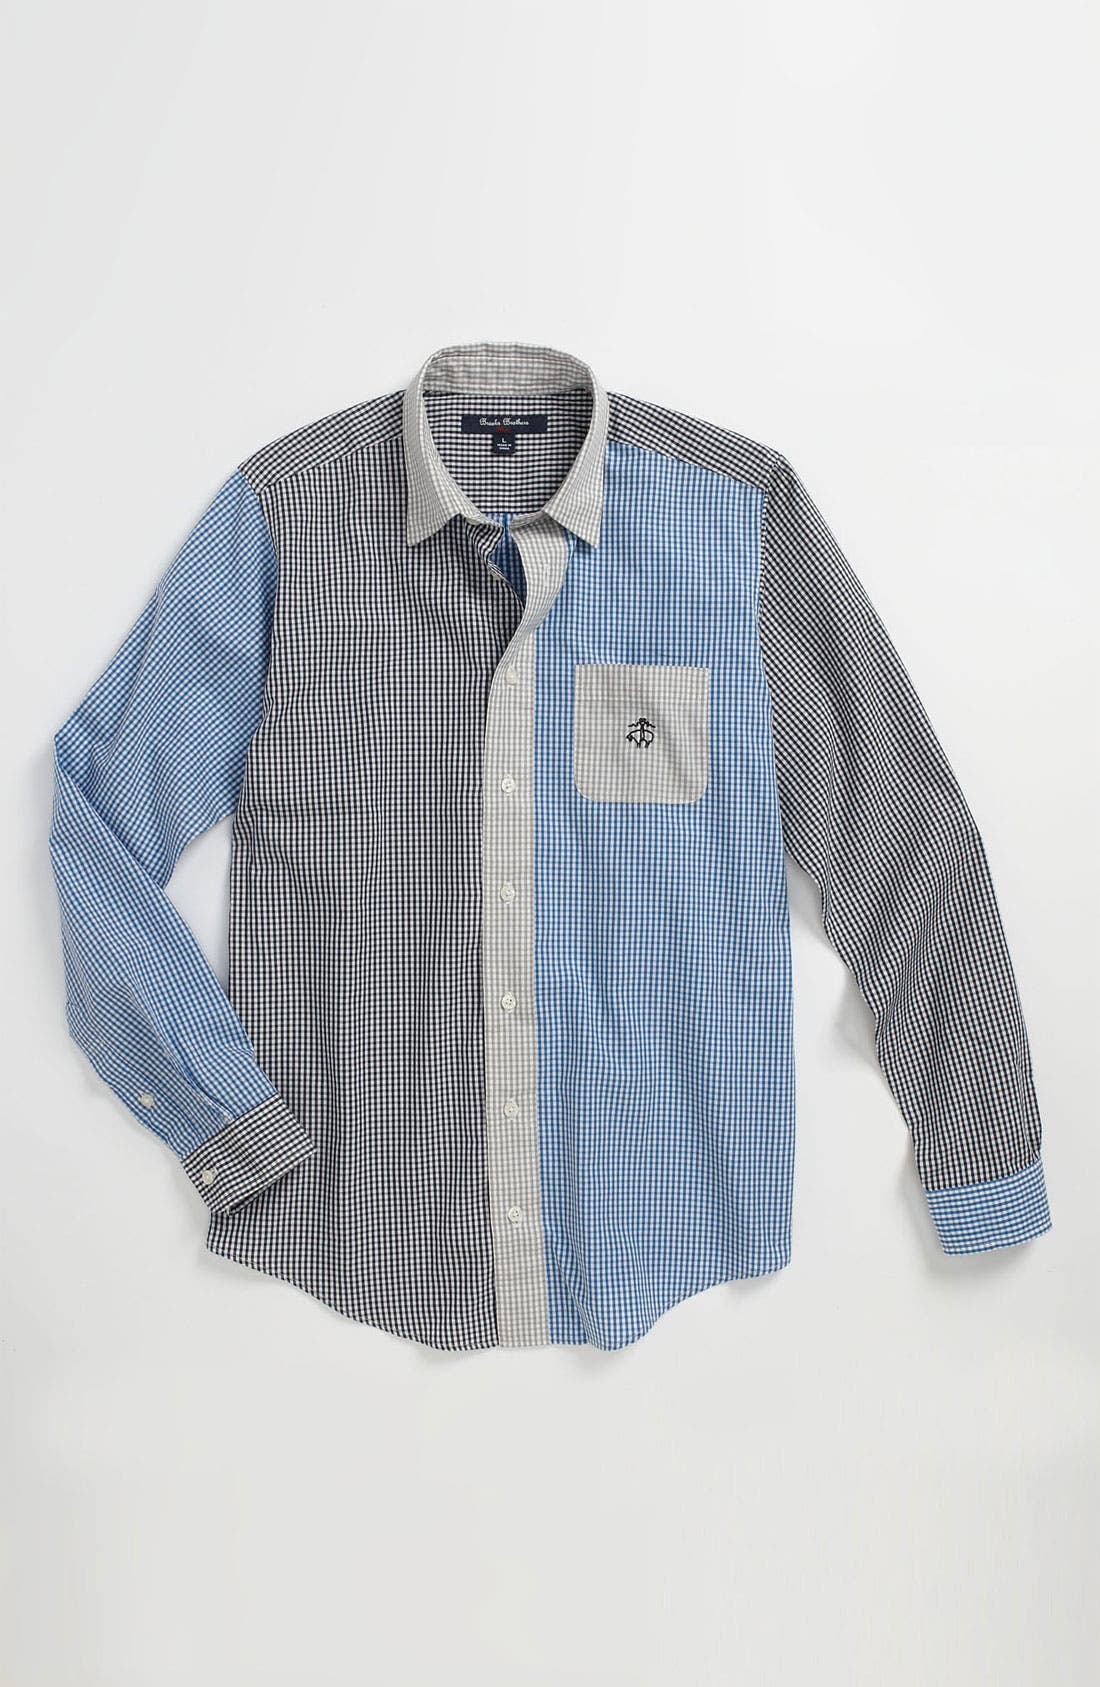 Alternate Image 1 Selected - Brooks Brothers Gingham Sport Shirt (Big Boys)